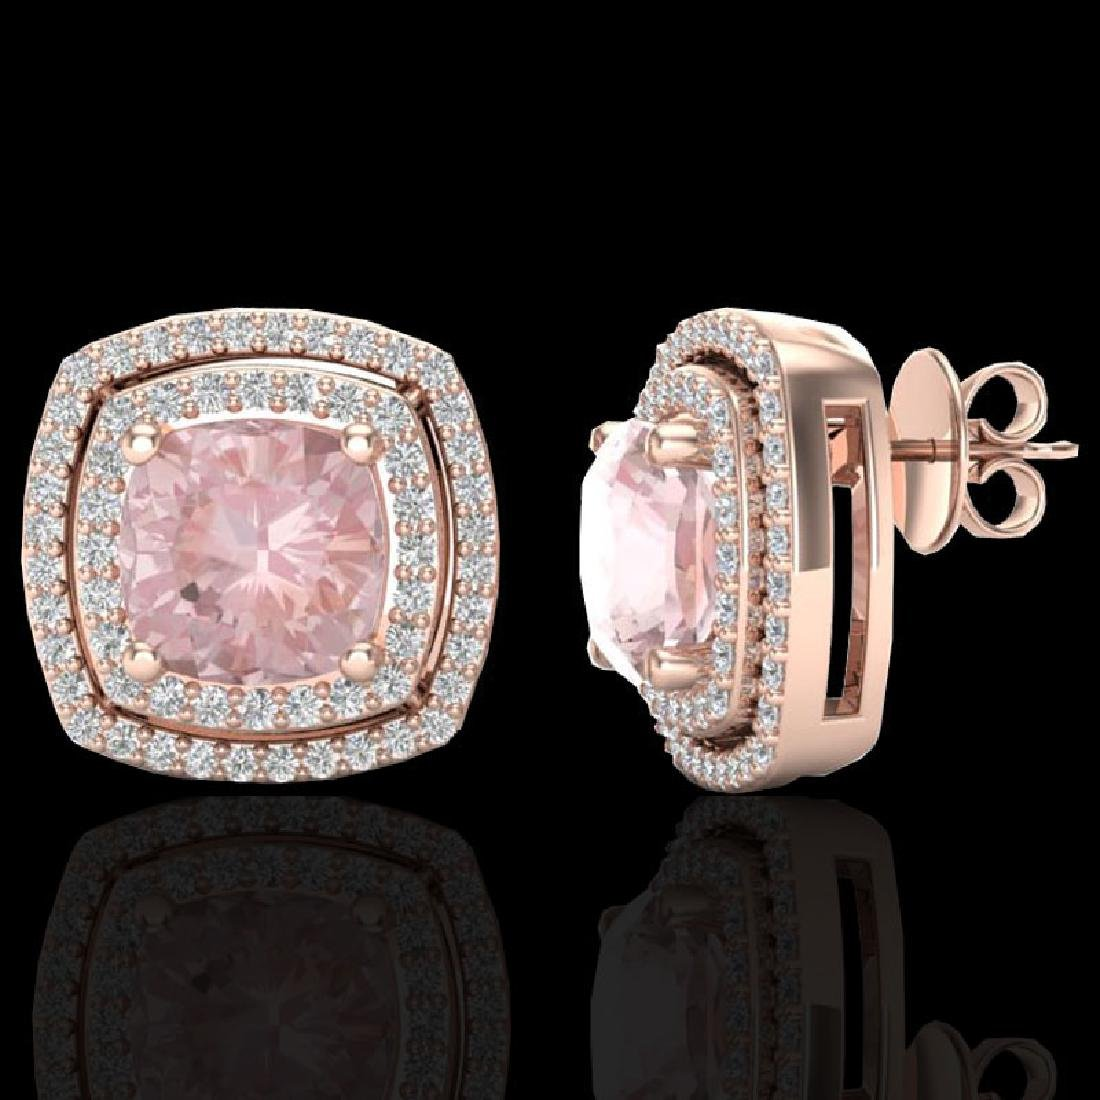 3.95 CTW Morganite & Micro Pave VS/SI Diamond Halo - 2